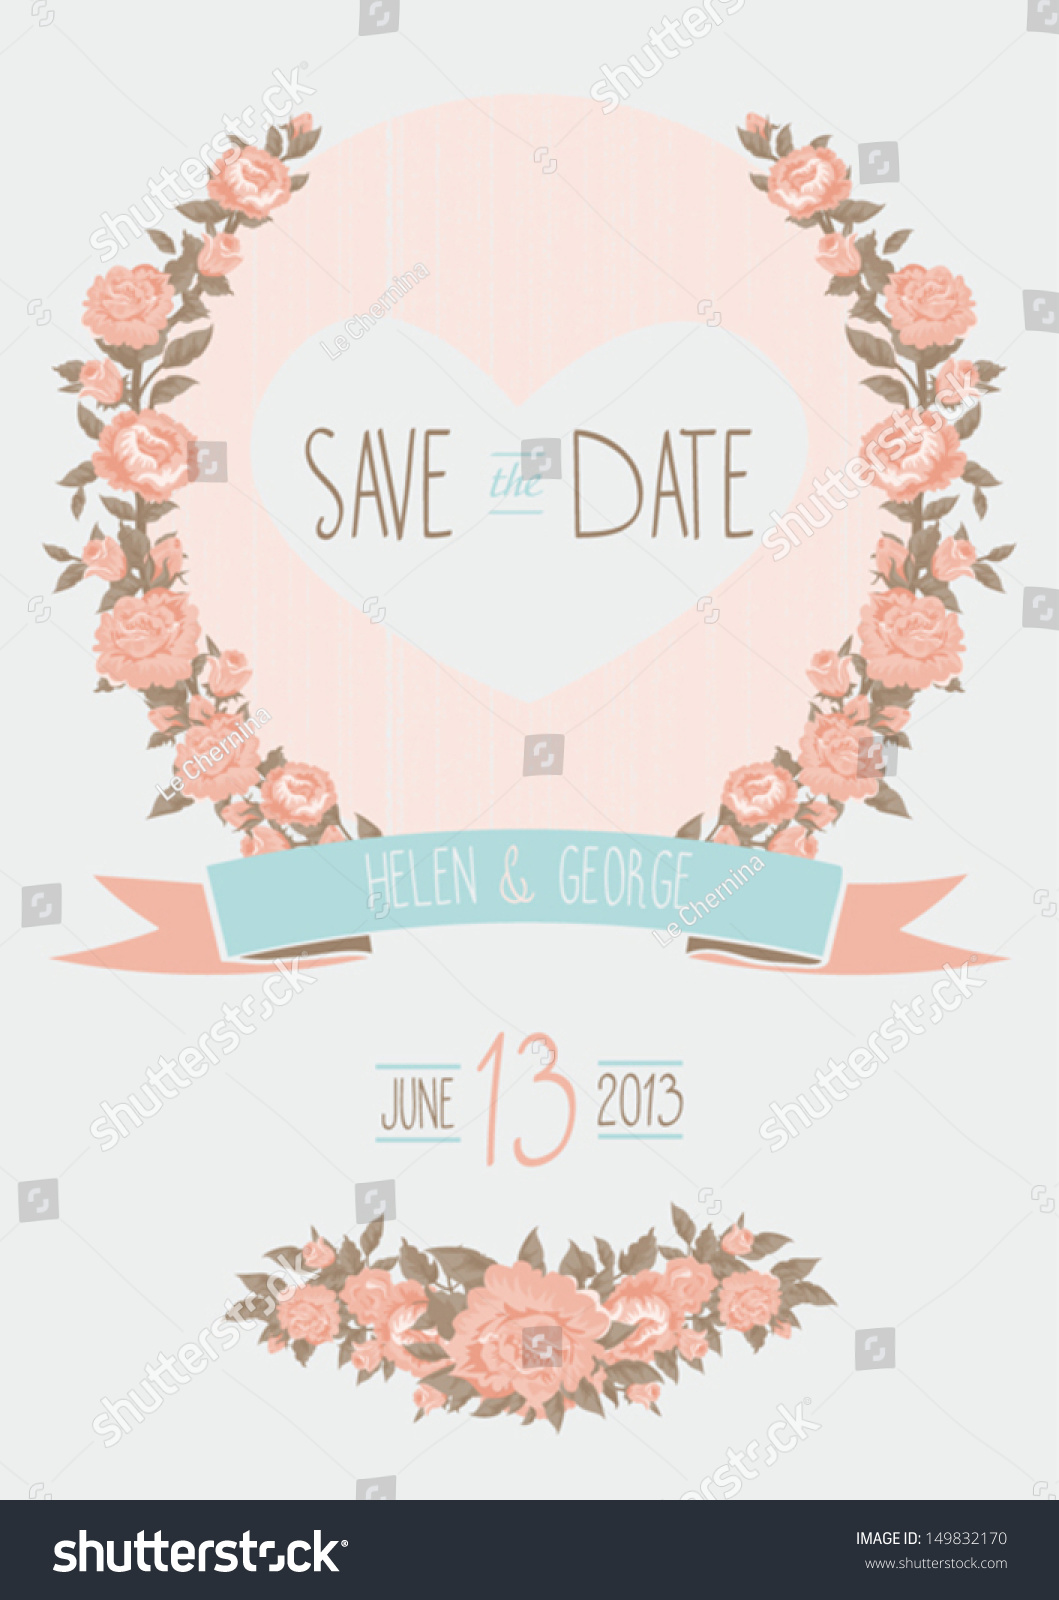 free vintage save the date templates - save date wedding invitation shabby chic stock vector